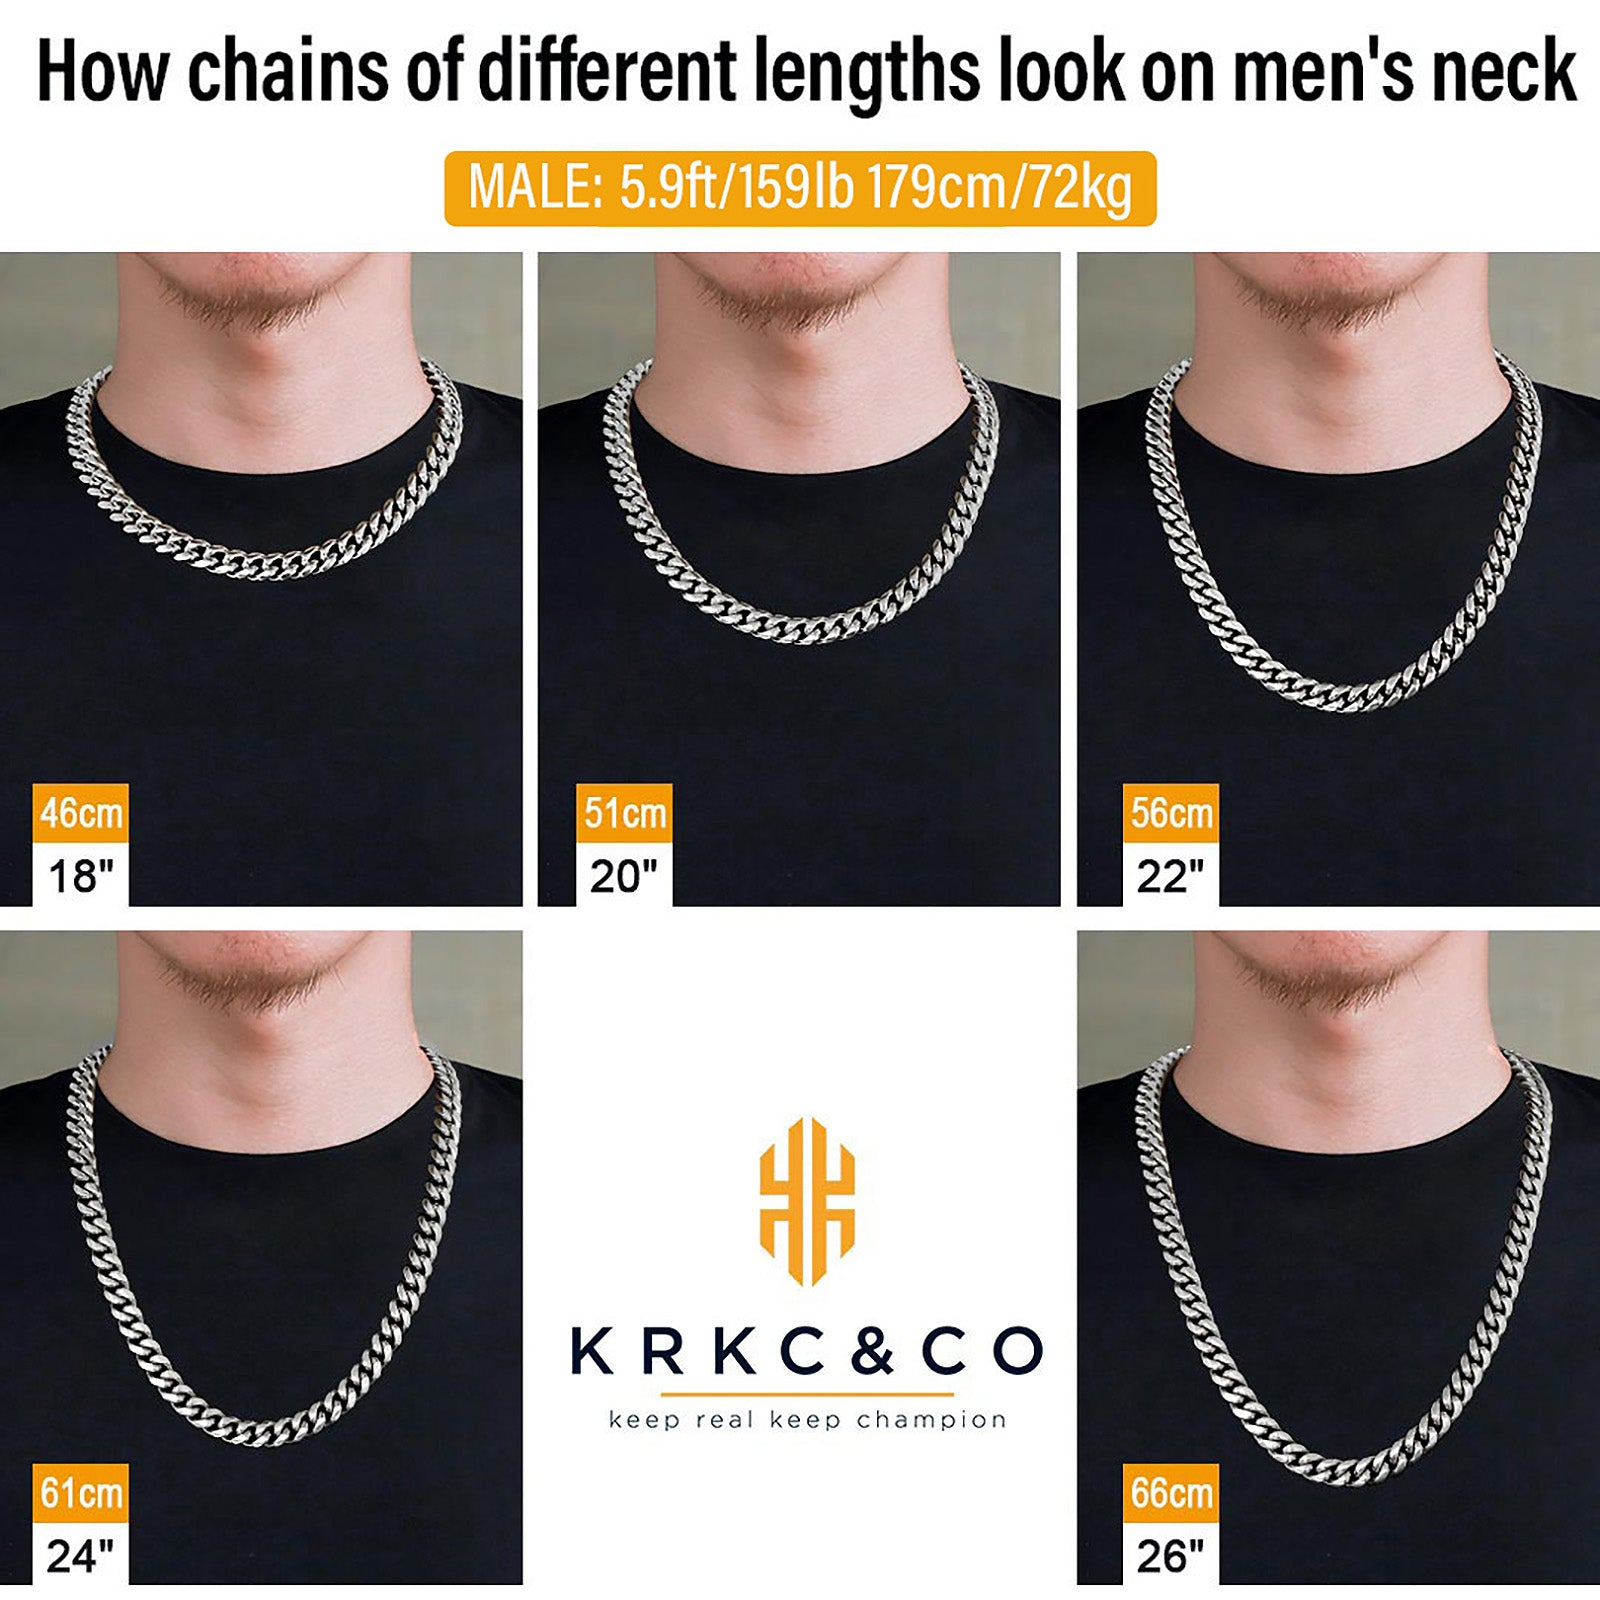 12mm Miami Cuban Link Chain in White Gold for Men's Chain-BOGO KRKC